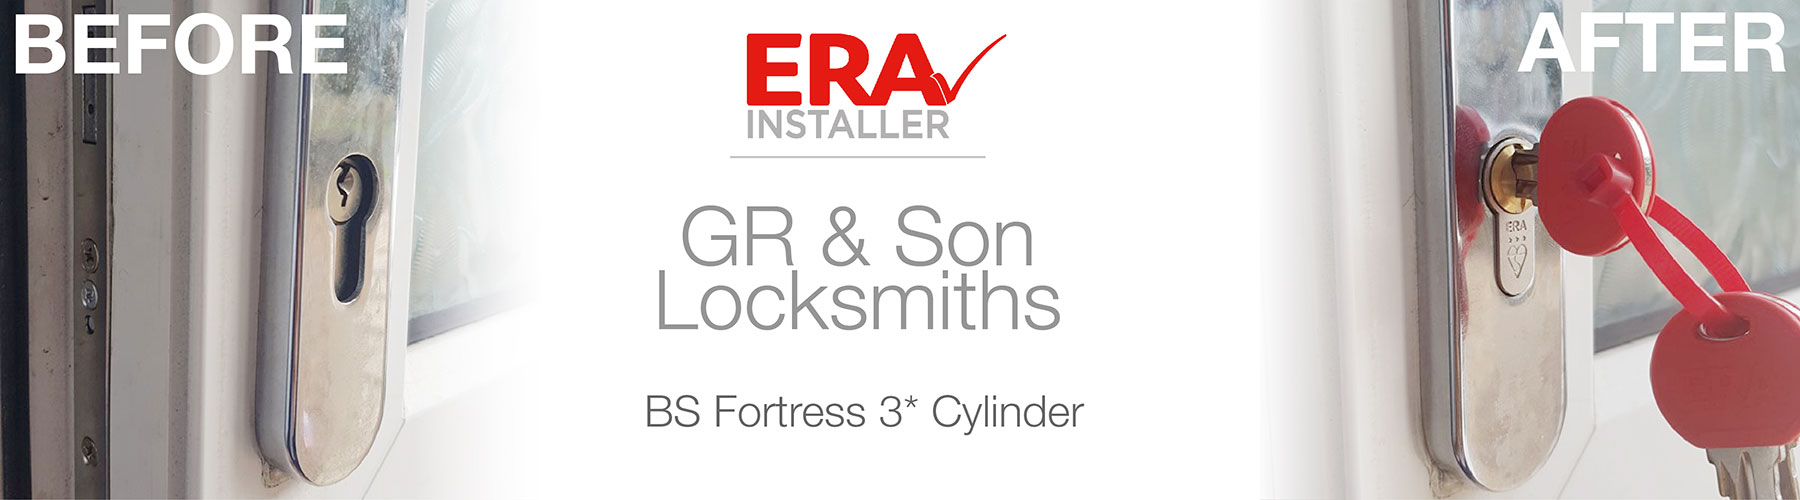 ERA Installer TestimonialGR and Sons